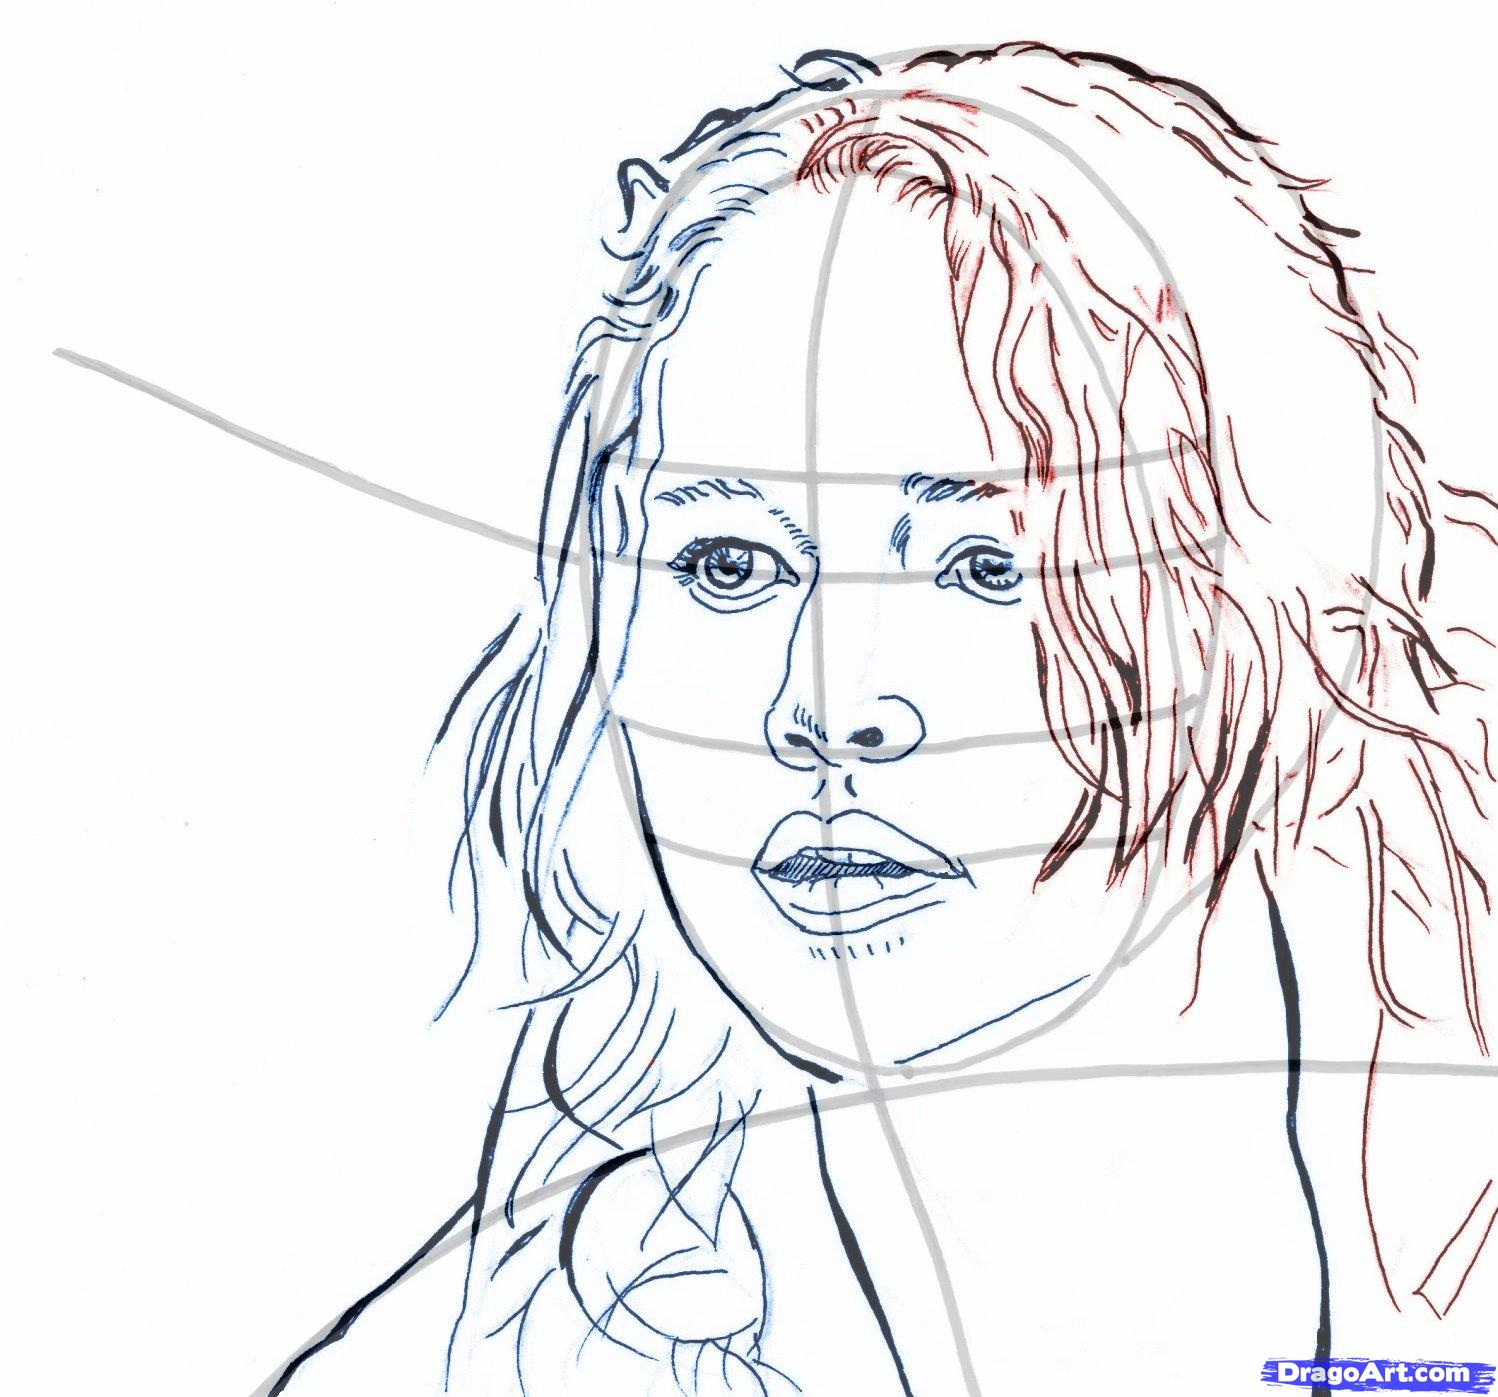 How to draw Romeo and Juliette's portrait with a pencil step by step 10